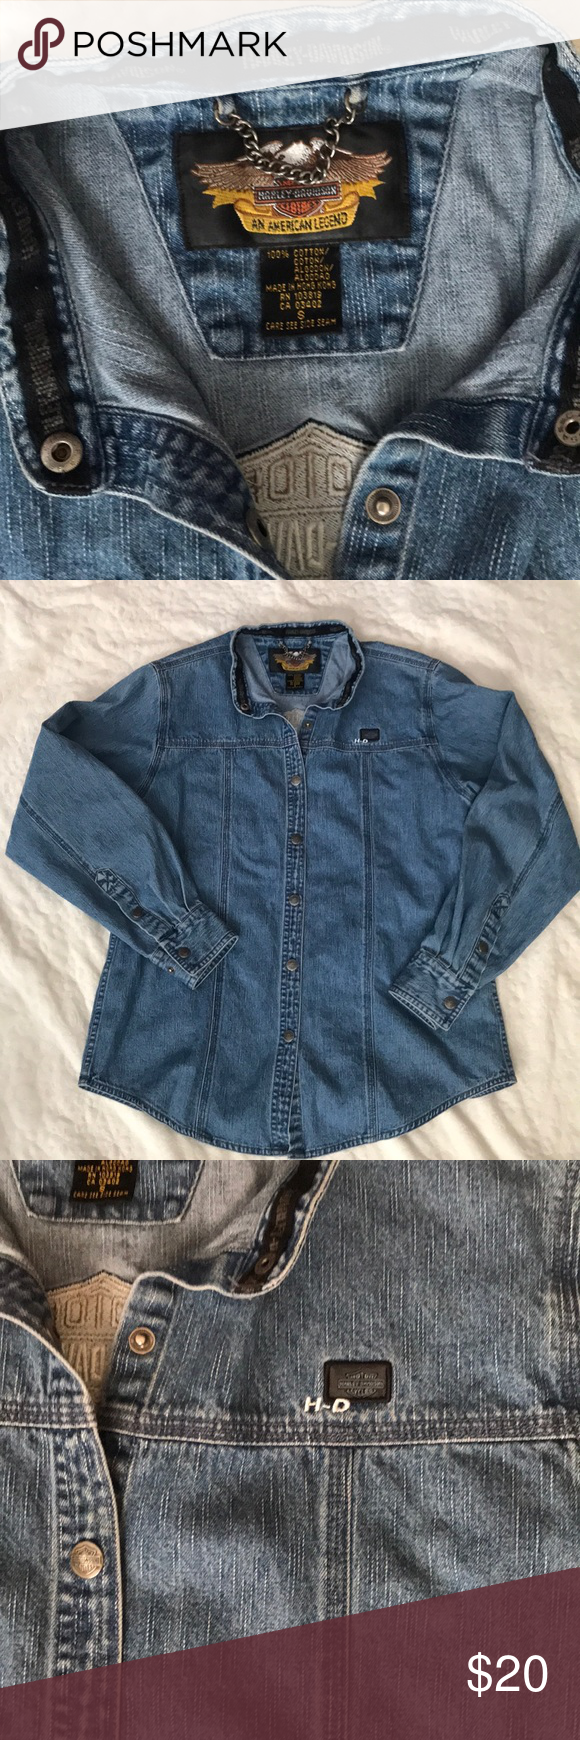 83fdc3adb85 Harley Davidson Denim Shirt Size Small Long sleeve Harley Davidson women s  size small shirt. Snap buttons. Excellent condition. Harley-Davidson Tops  Button ...